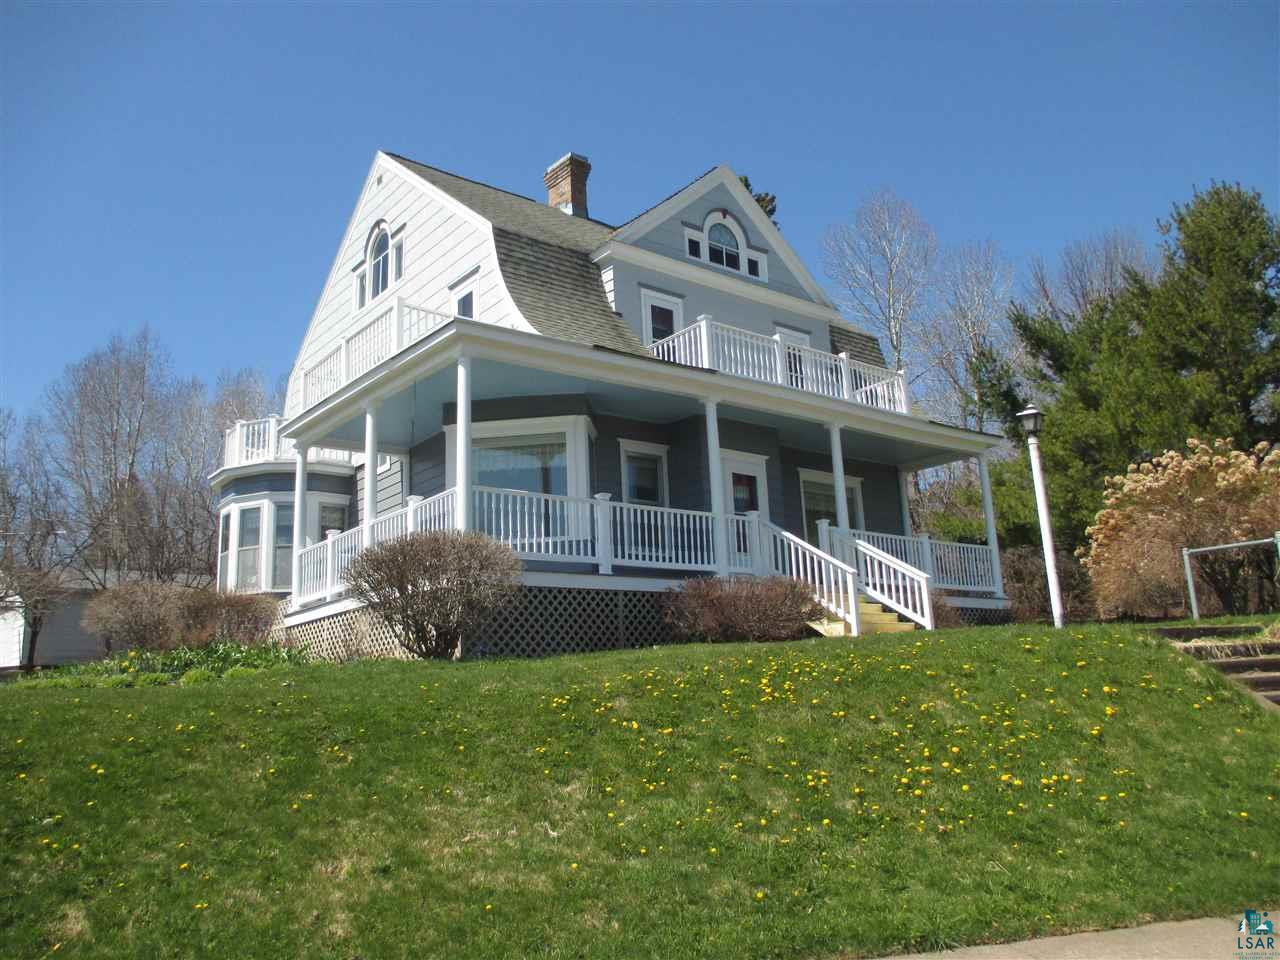 In 1905 a prominent Bayfield entrepreneur likely chose this site for its dramatic location, overlooking the natural harbor, Lake Superior and Madeline Island. Walking distance to downtown, this historic home has a classic feel inside and out. High ceilings, hardwood floors, open staircase plus a hidden one! There's a grand living room with a lake view window seat where you'll soak up the sun. Formal dining room has large bow window capturing the awesome view. With 3 bedrooms, office and a bonus room ready to finish as a master bedroom suite or home office, there's plenty of space. Beautiful wraparound porch plus 3 upper porches brings the Lake to you! Attached, heated oversize 2-car garage is project-ready. Big unfinished attic has 3 sets of lake view windows. Best of all, you're so close to the water and the heart of the Bayfield community. Come take a look!